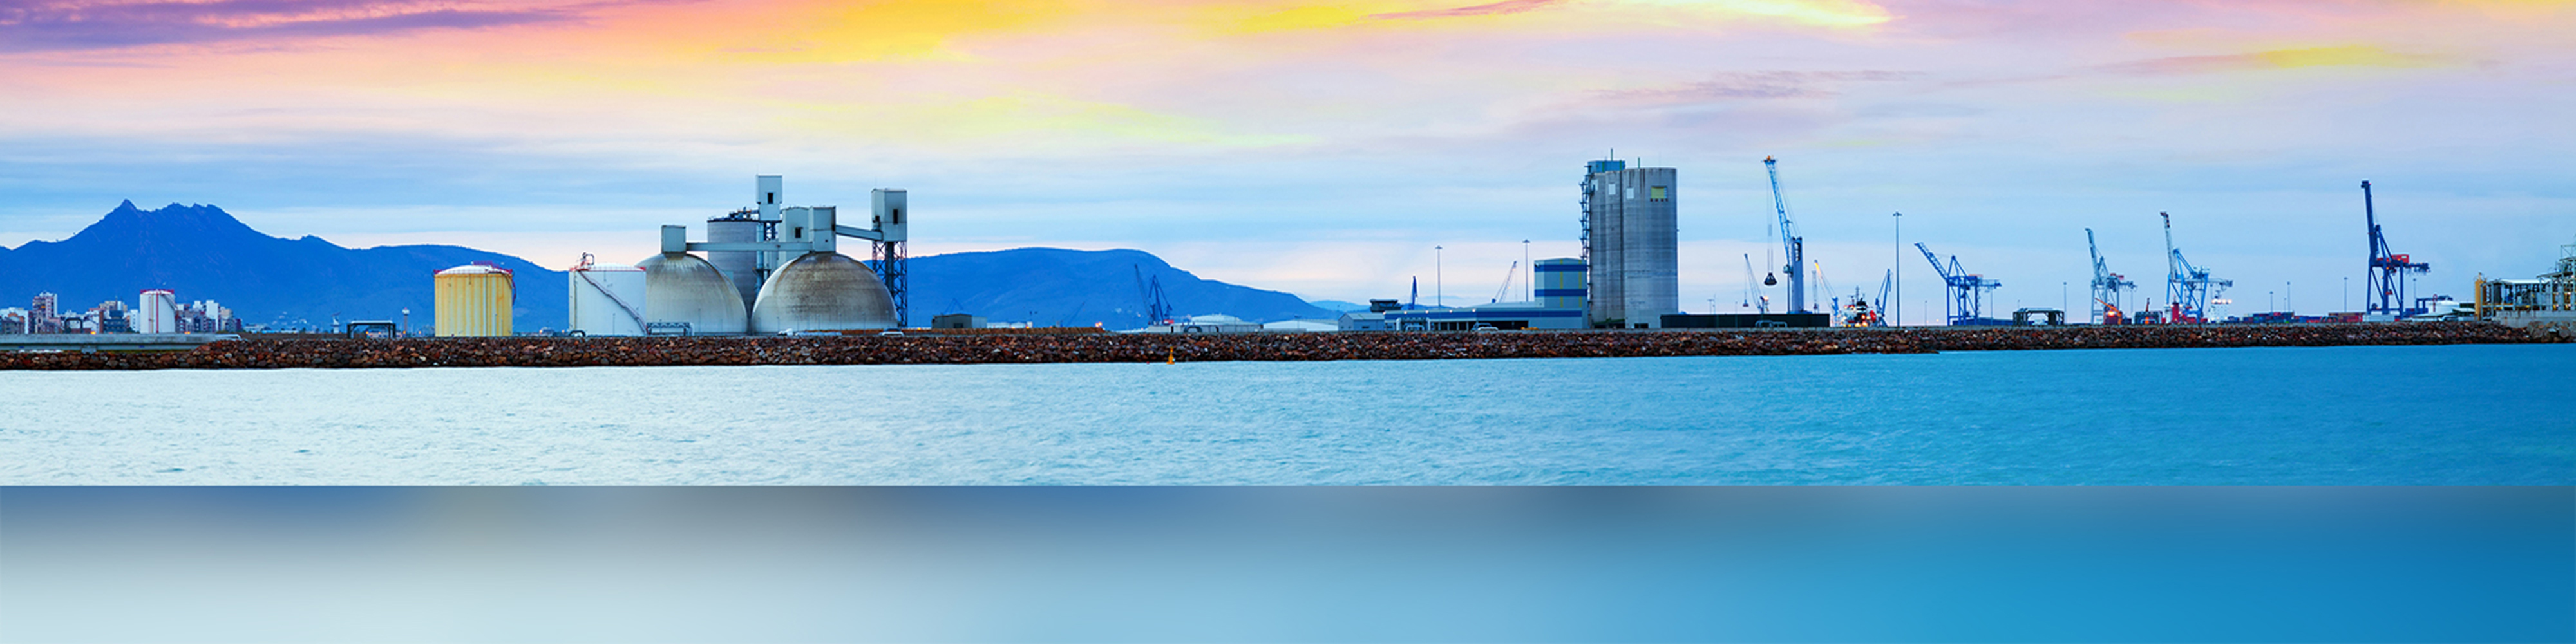 Panarama of Puerto de Castellon -  industrial port  in  Castellon de la Plana in dawn.  Spain